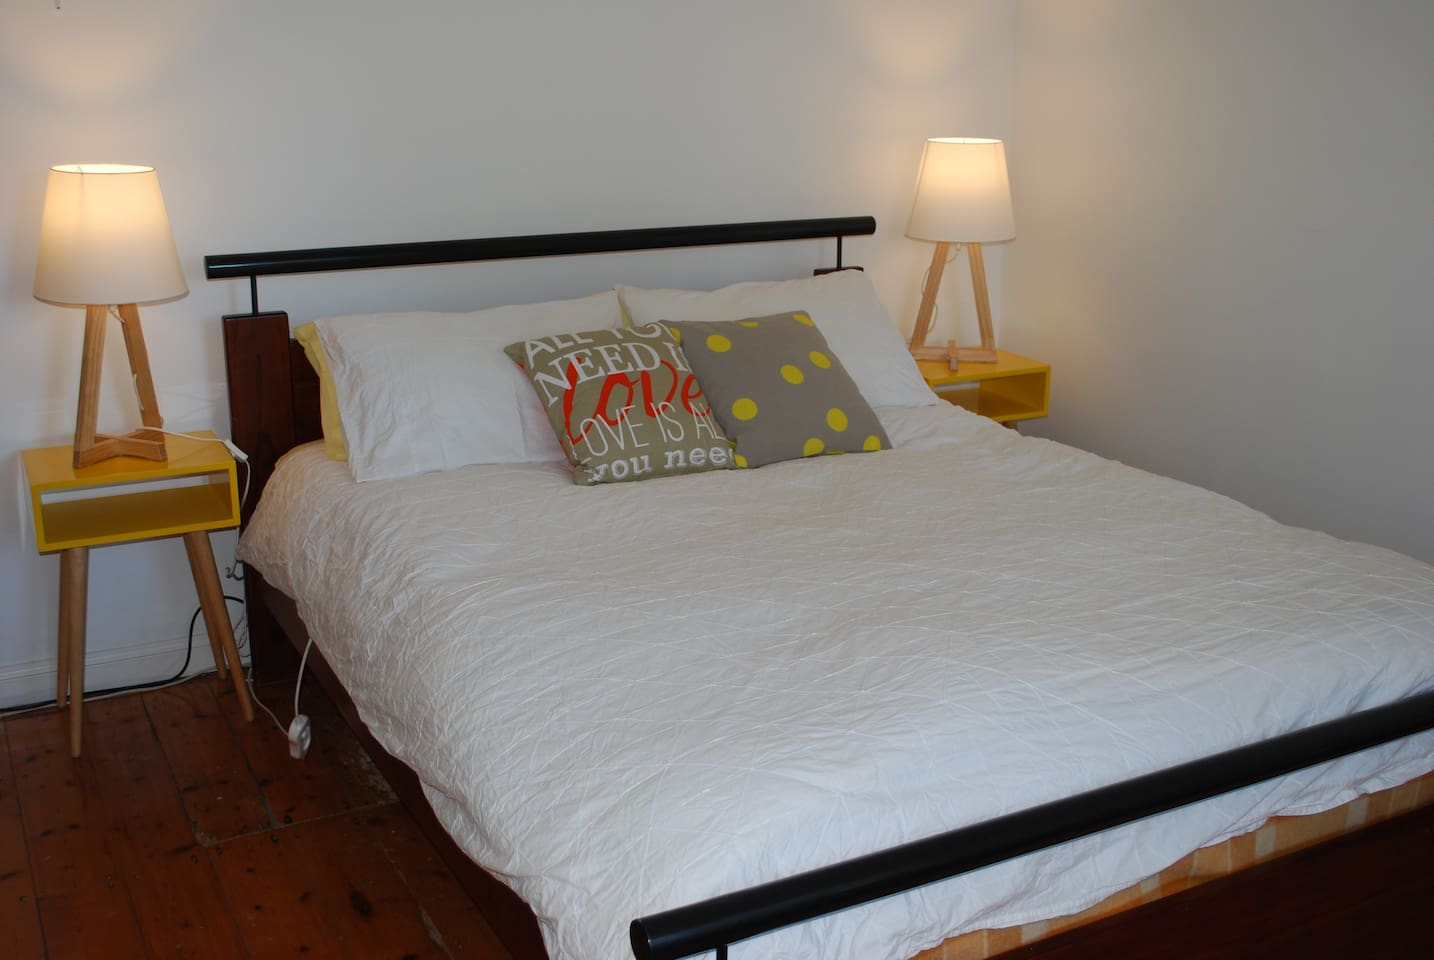 Comfortable Queen size bed with feather doona and electric blanket for chilly Melbourne nights